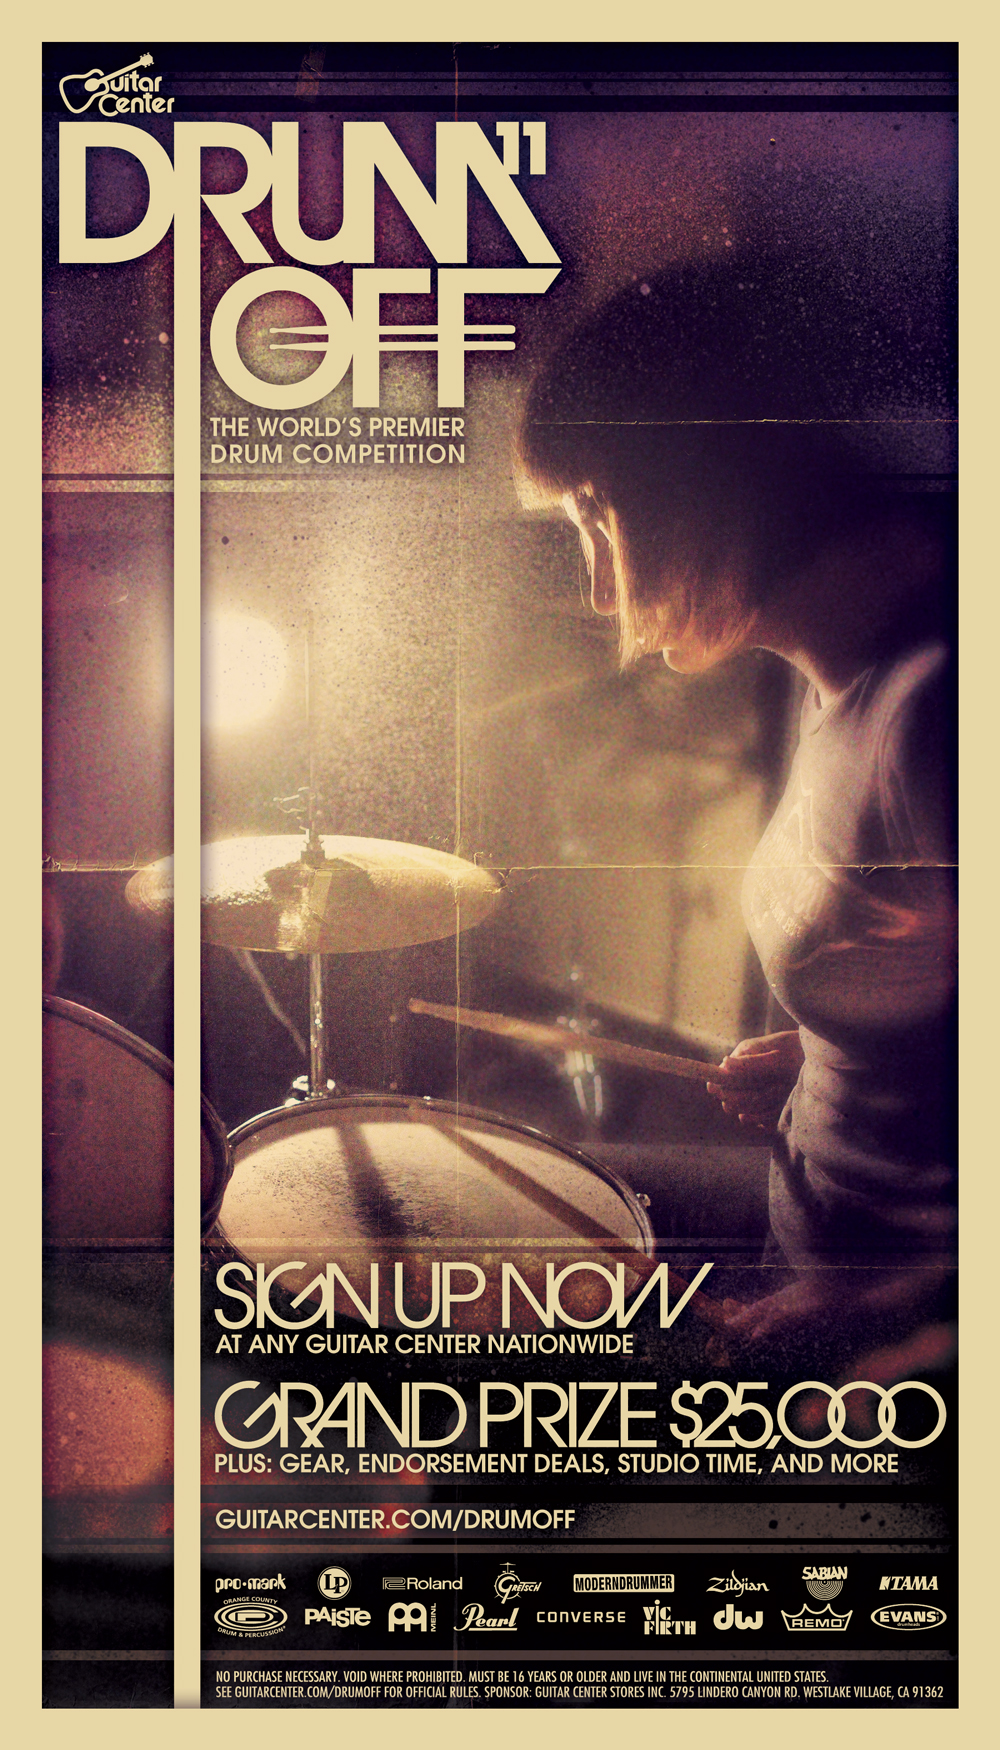 Drum-Off-2011---Sign-Up-Now.jpg